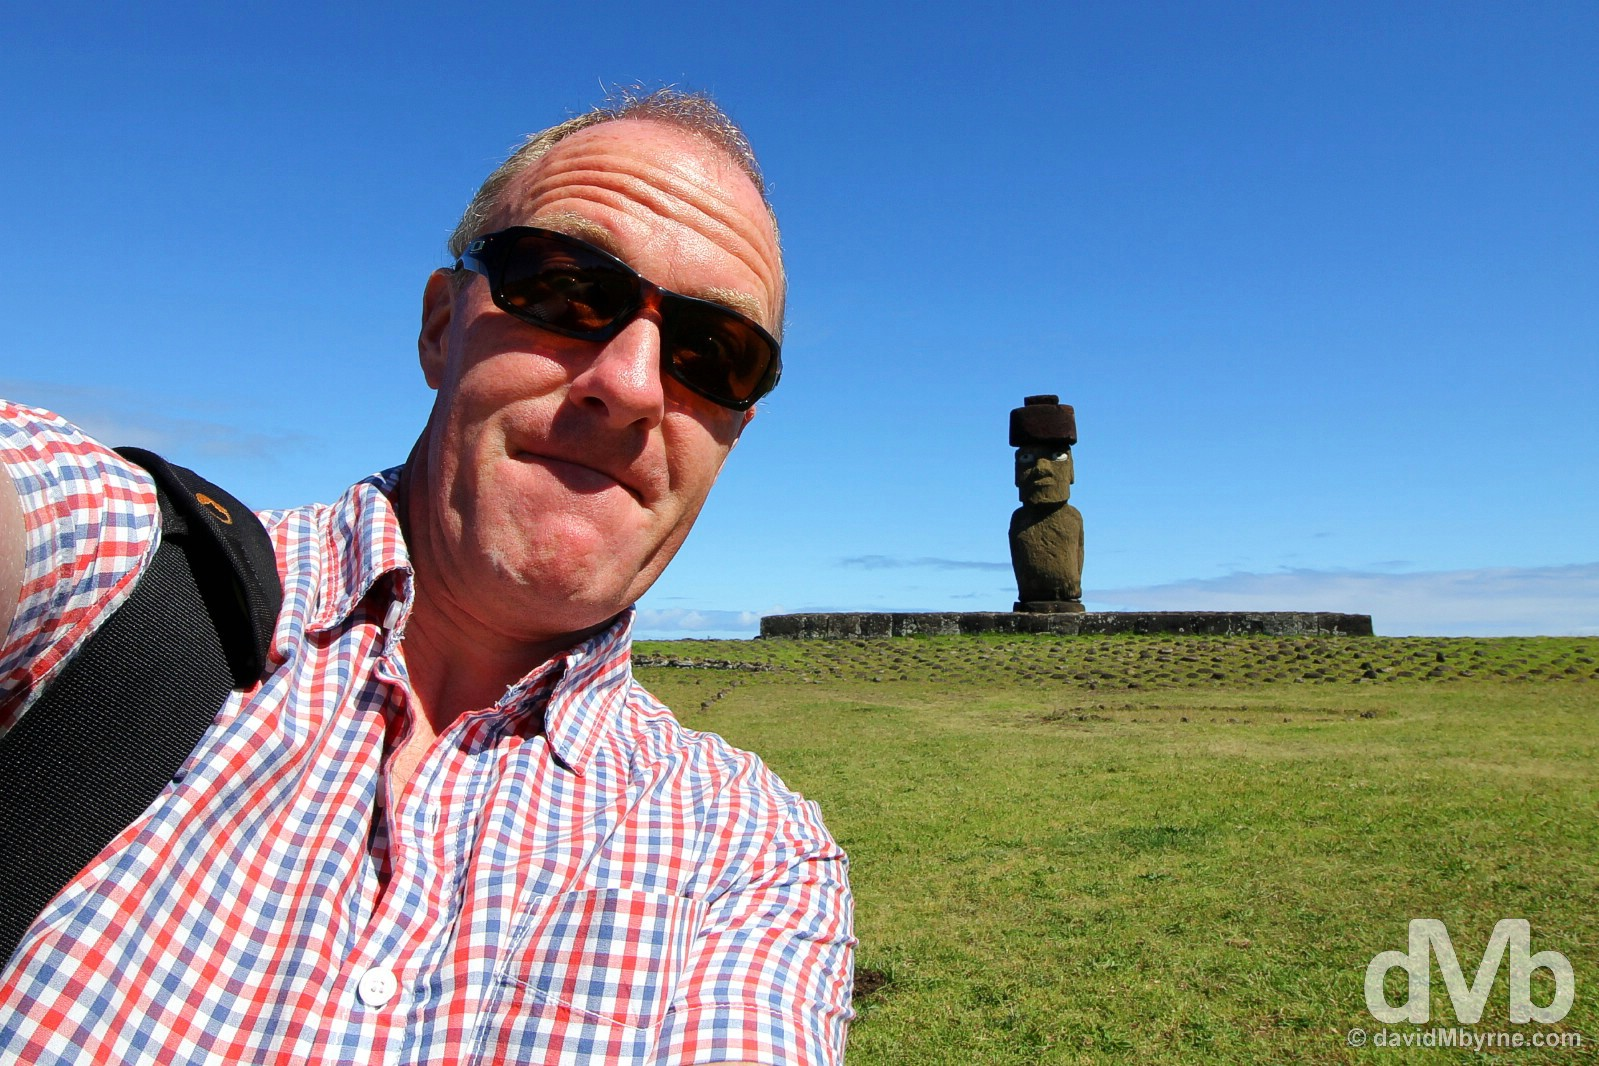 Selfie at Tahai, Easter Island, Chile. September 30, 2015.